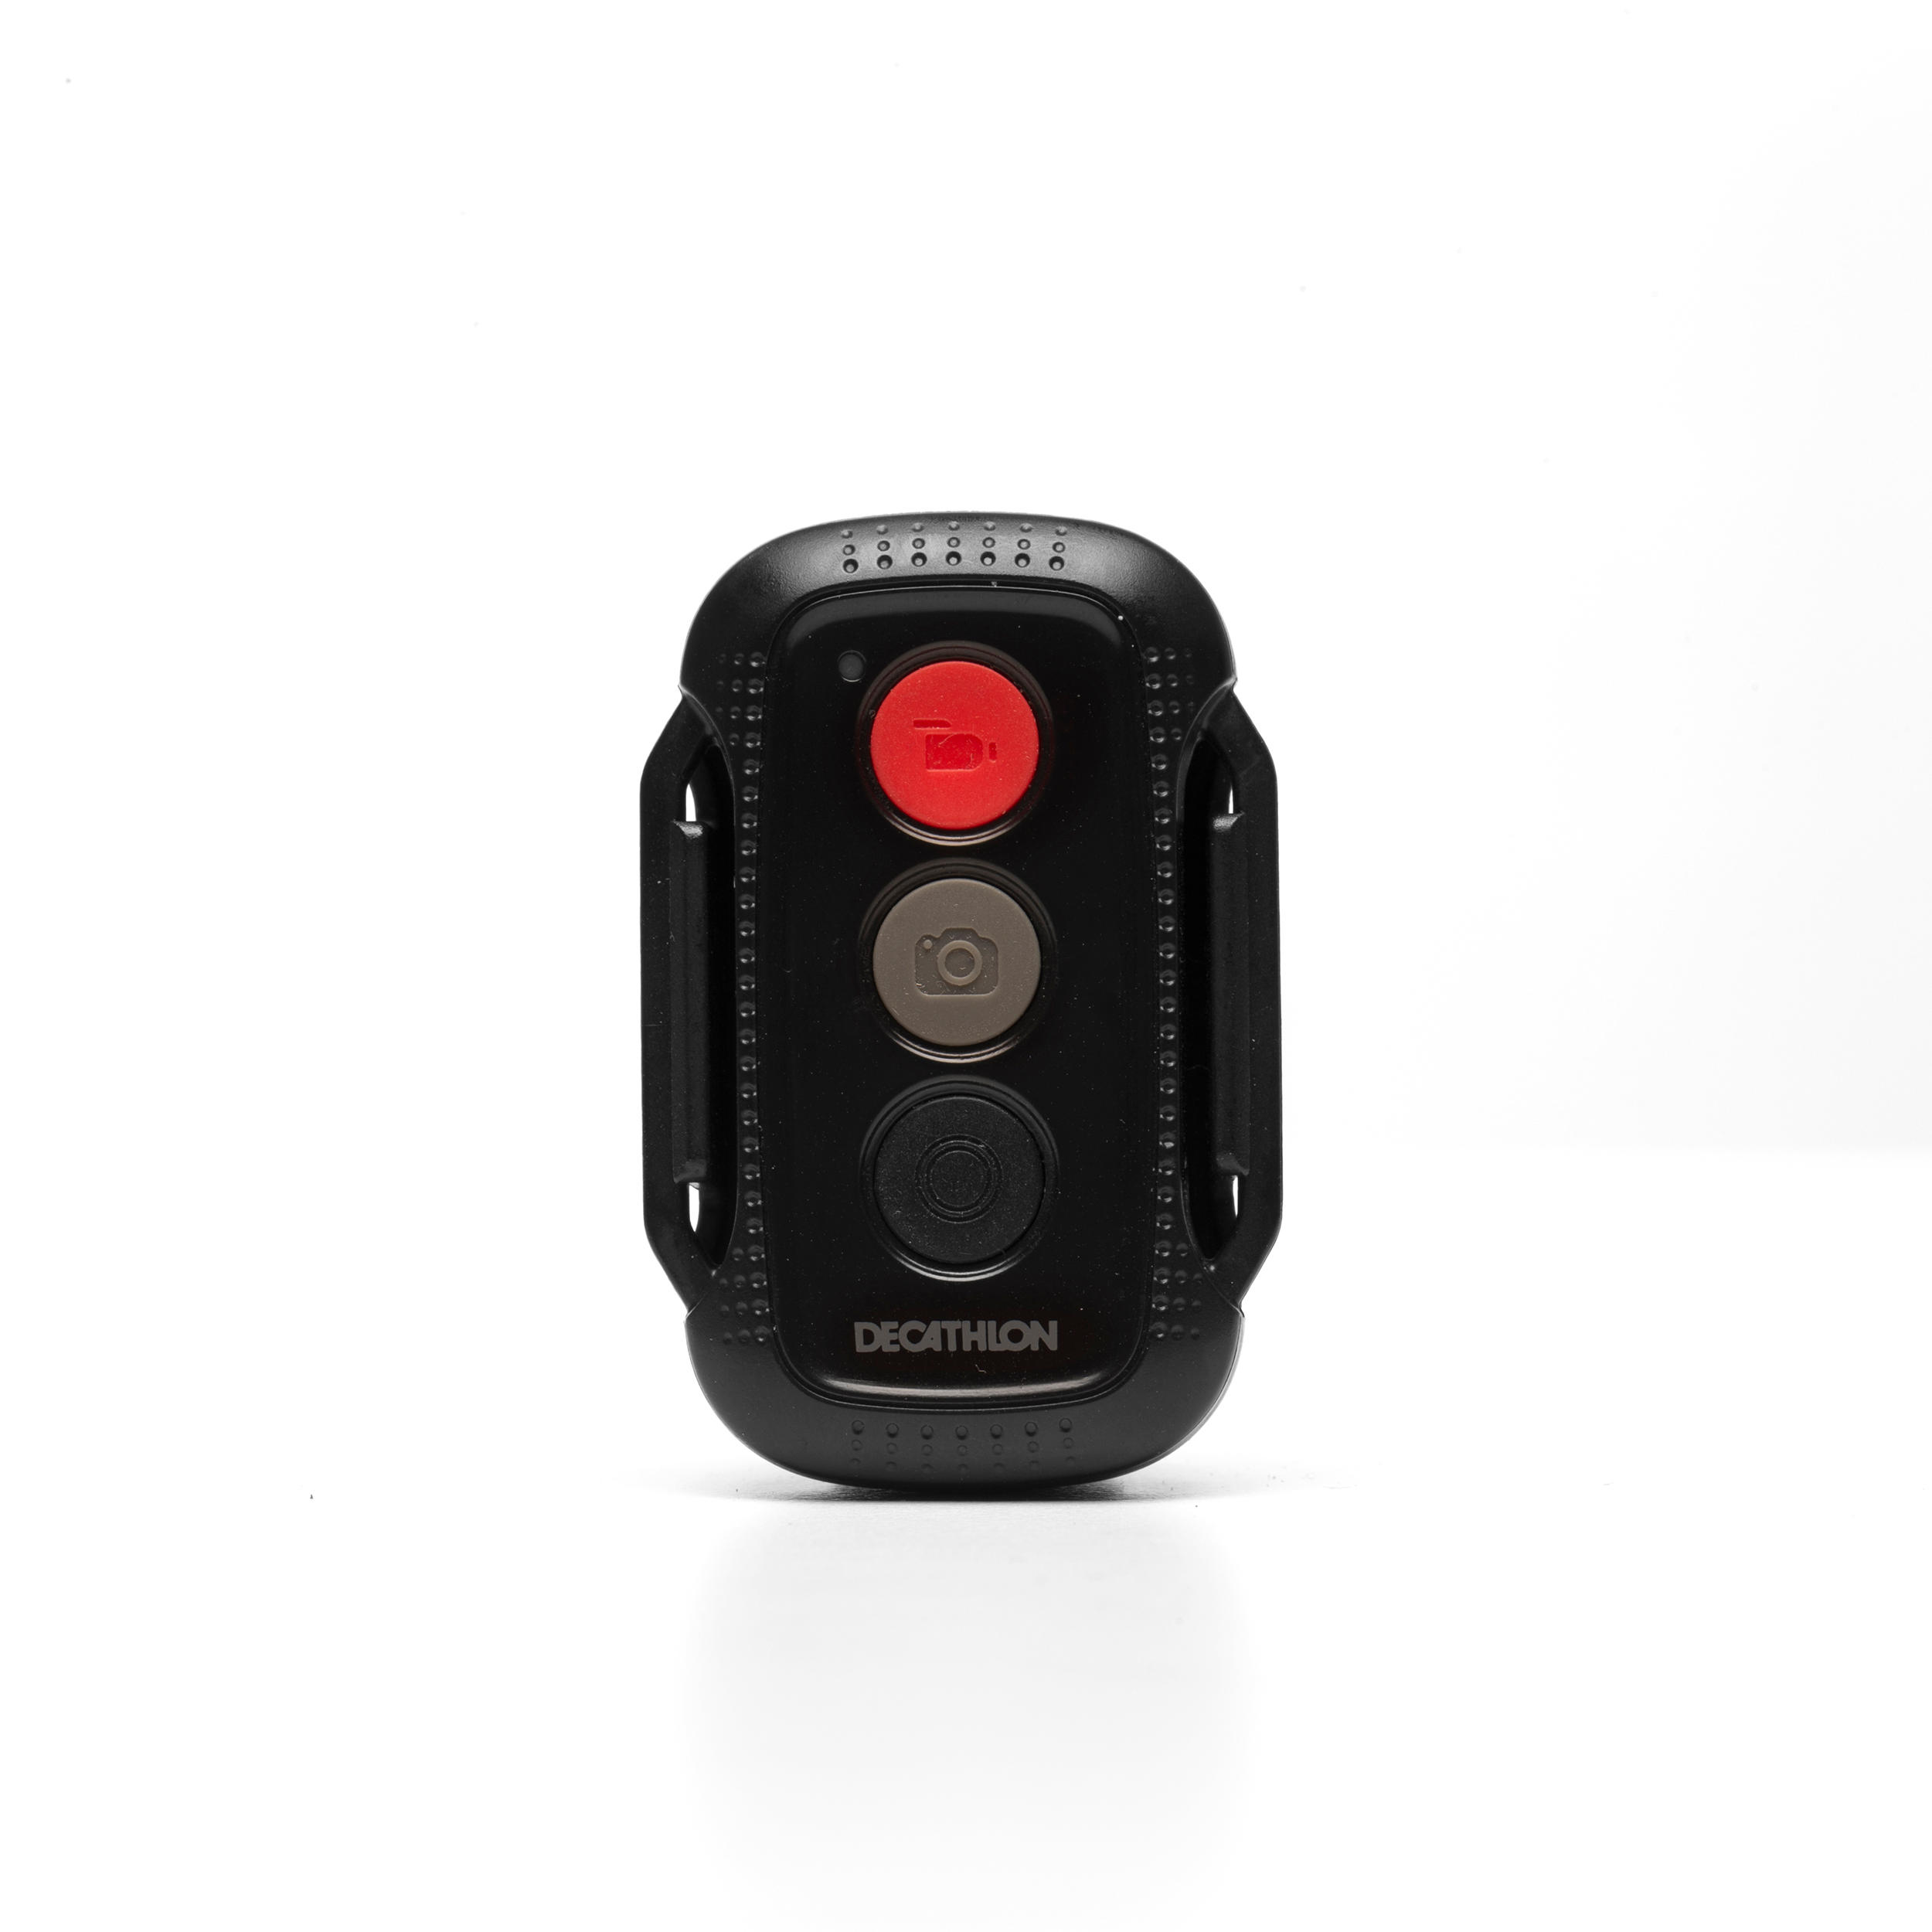 Bluetooth Remote Control for G-EYE 500 (2017) and 900 Cameras